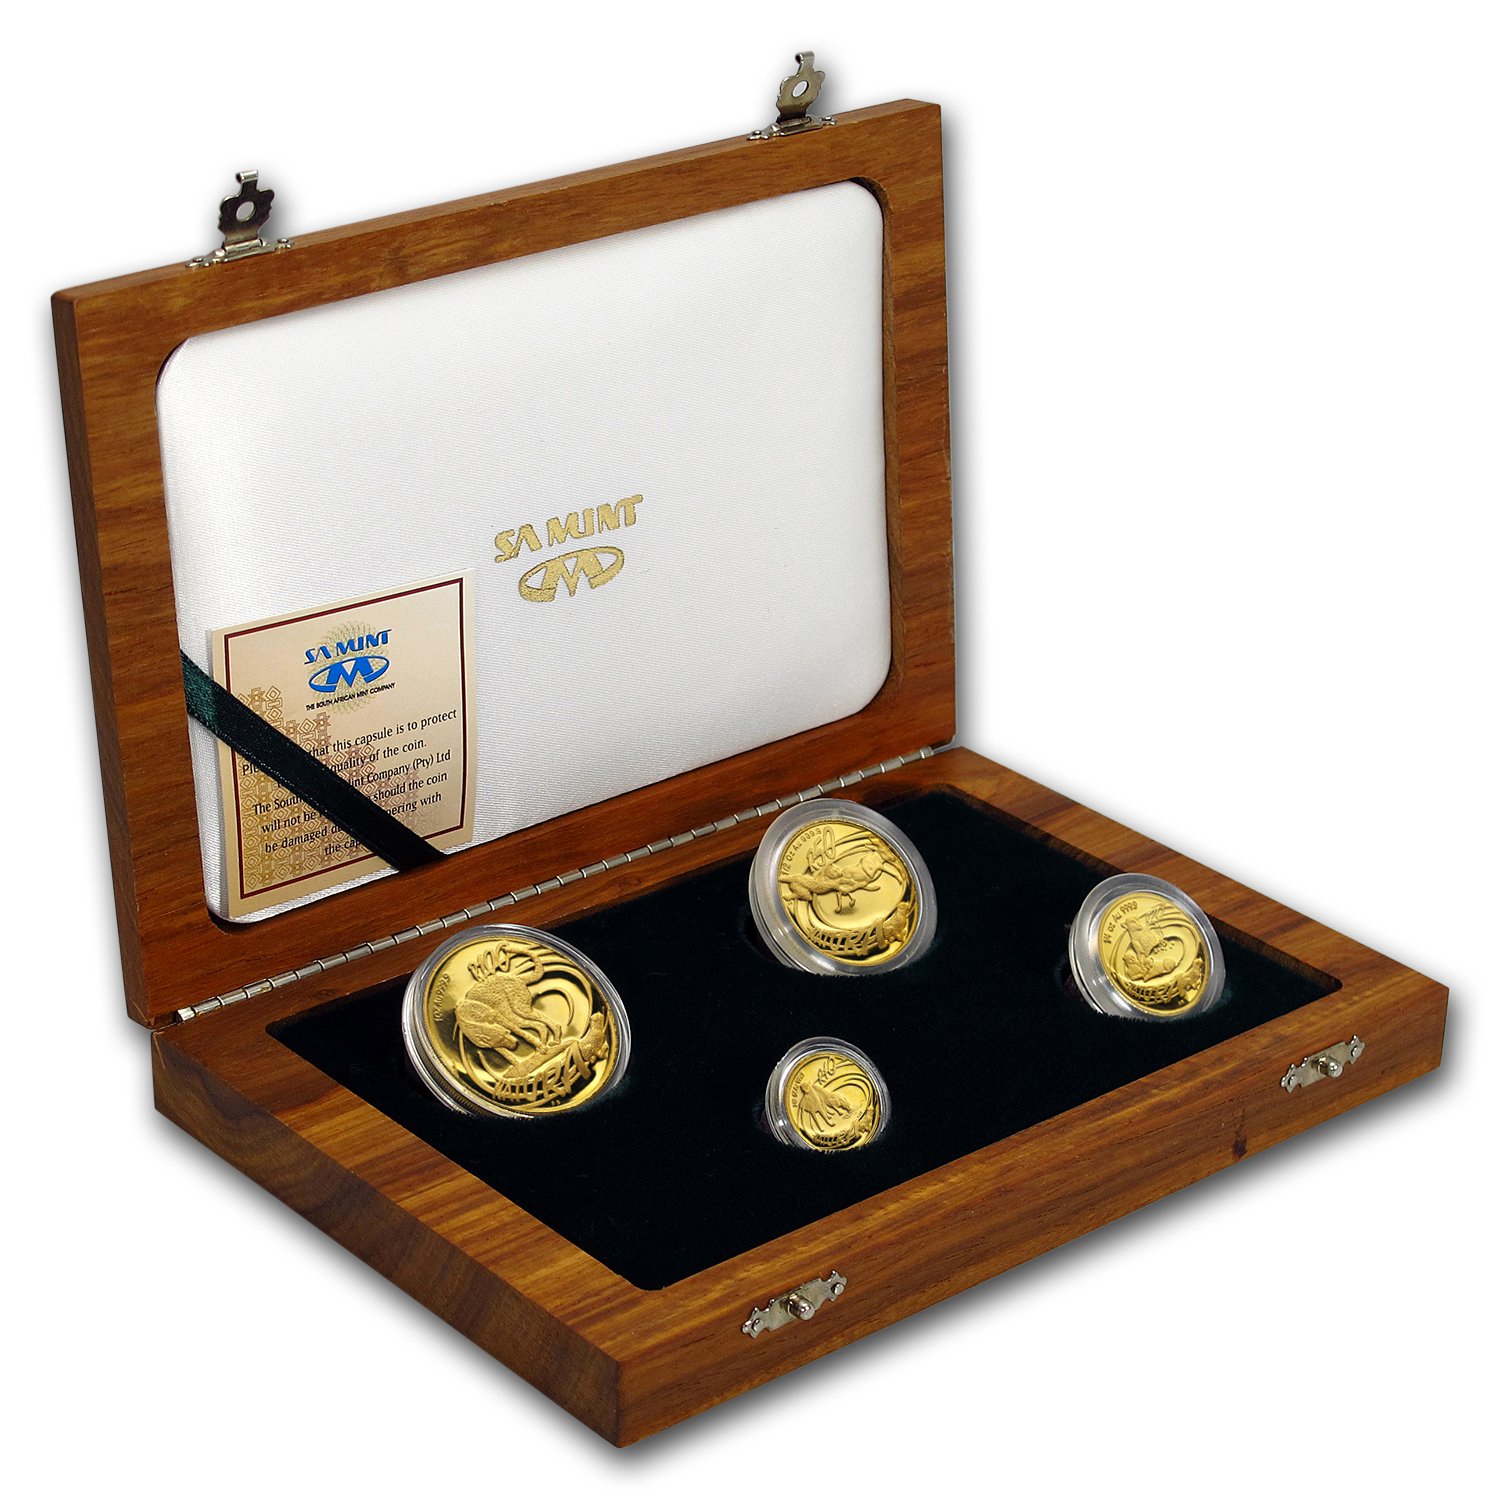 2002 South Africa 4-Coin Gold Natura Cheetah Proof Set